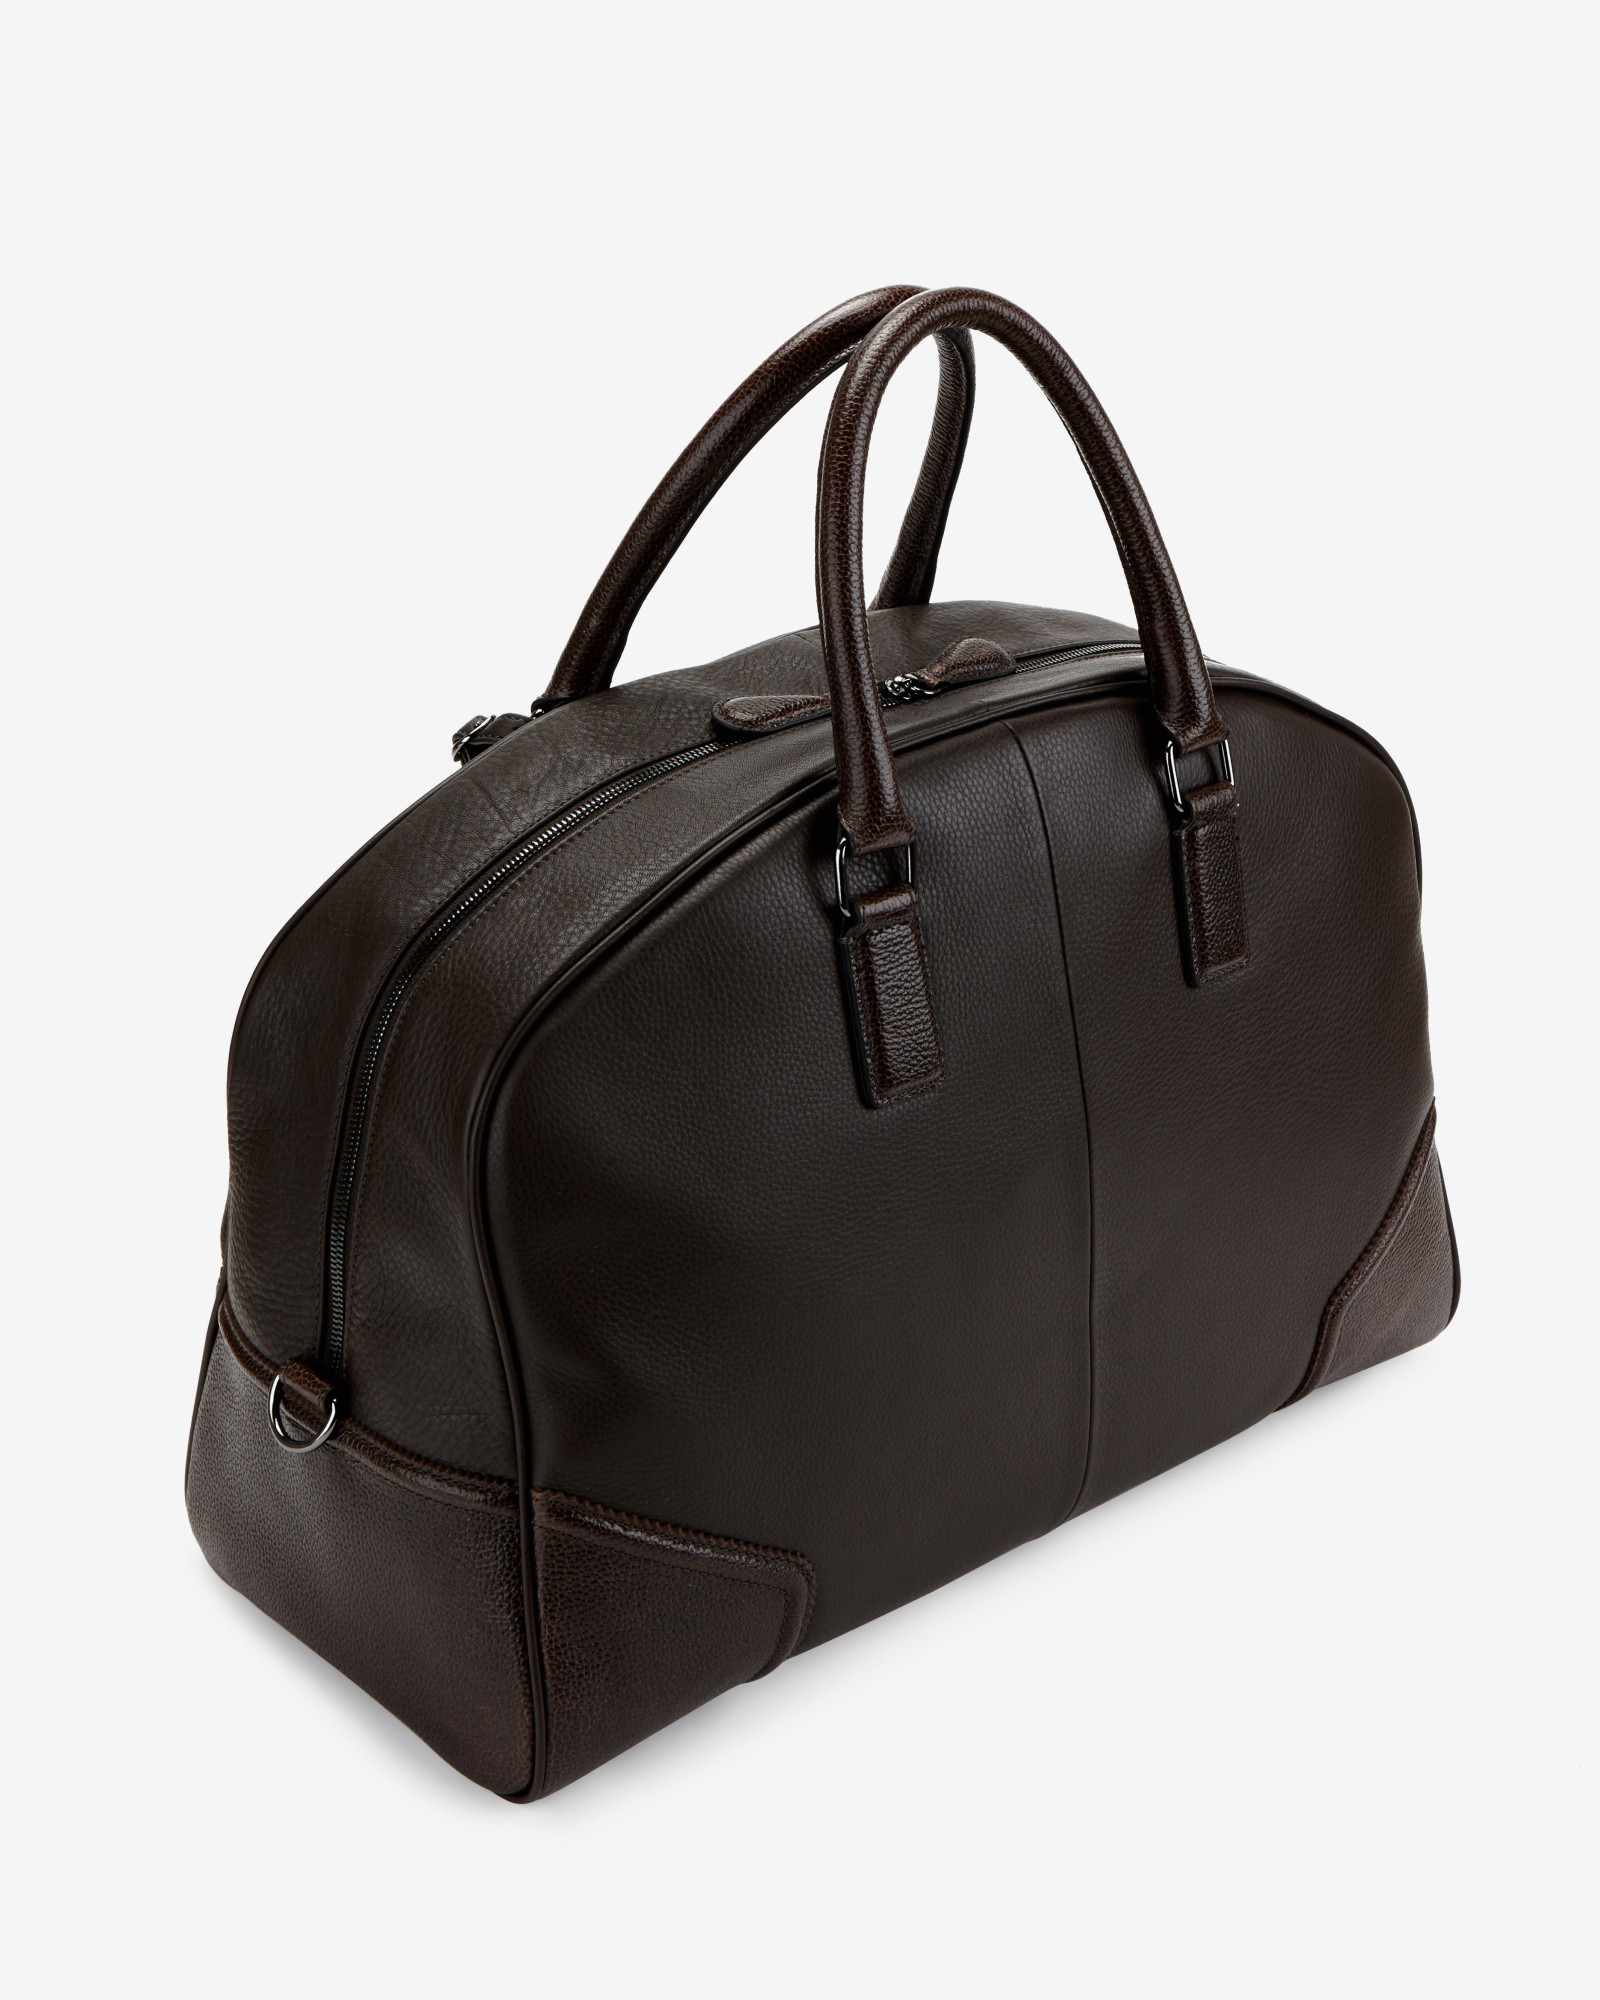 6749a09ba611b5 Ted Baker Mens Leather Bag - Home Decorating Ideas   Interior Design